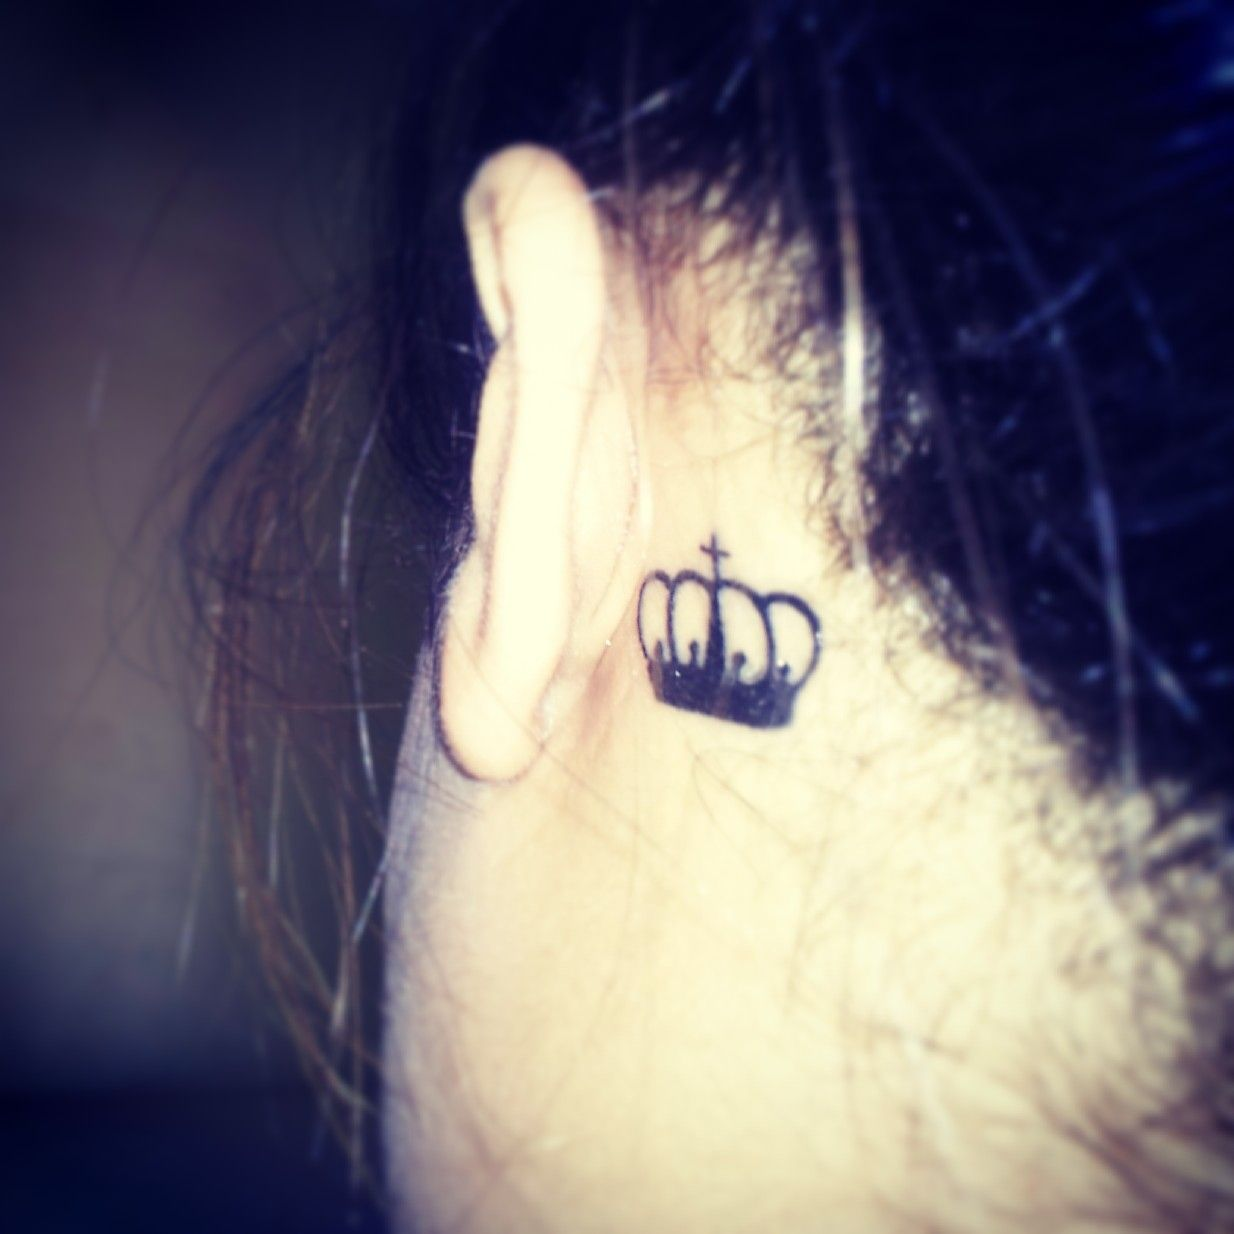 So in love with my crown tattoo! ♥   Meaning for the crown is that my name means 'crown/victory' in Greek.